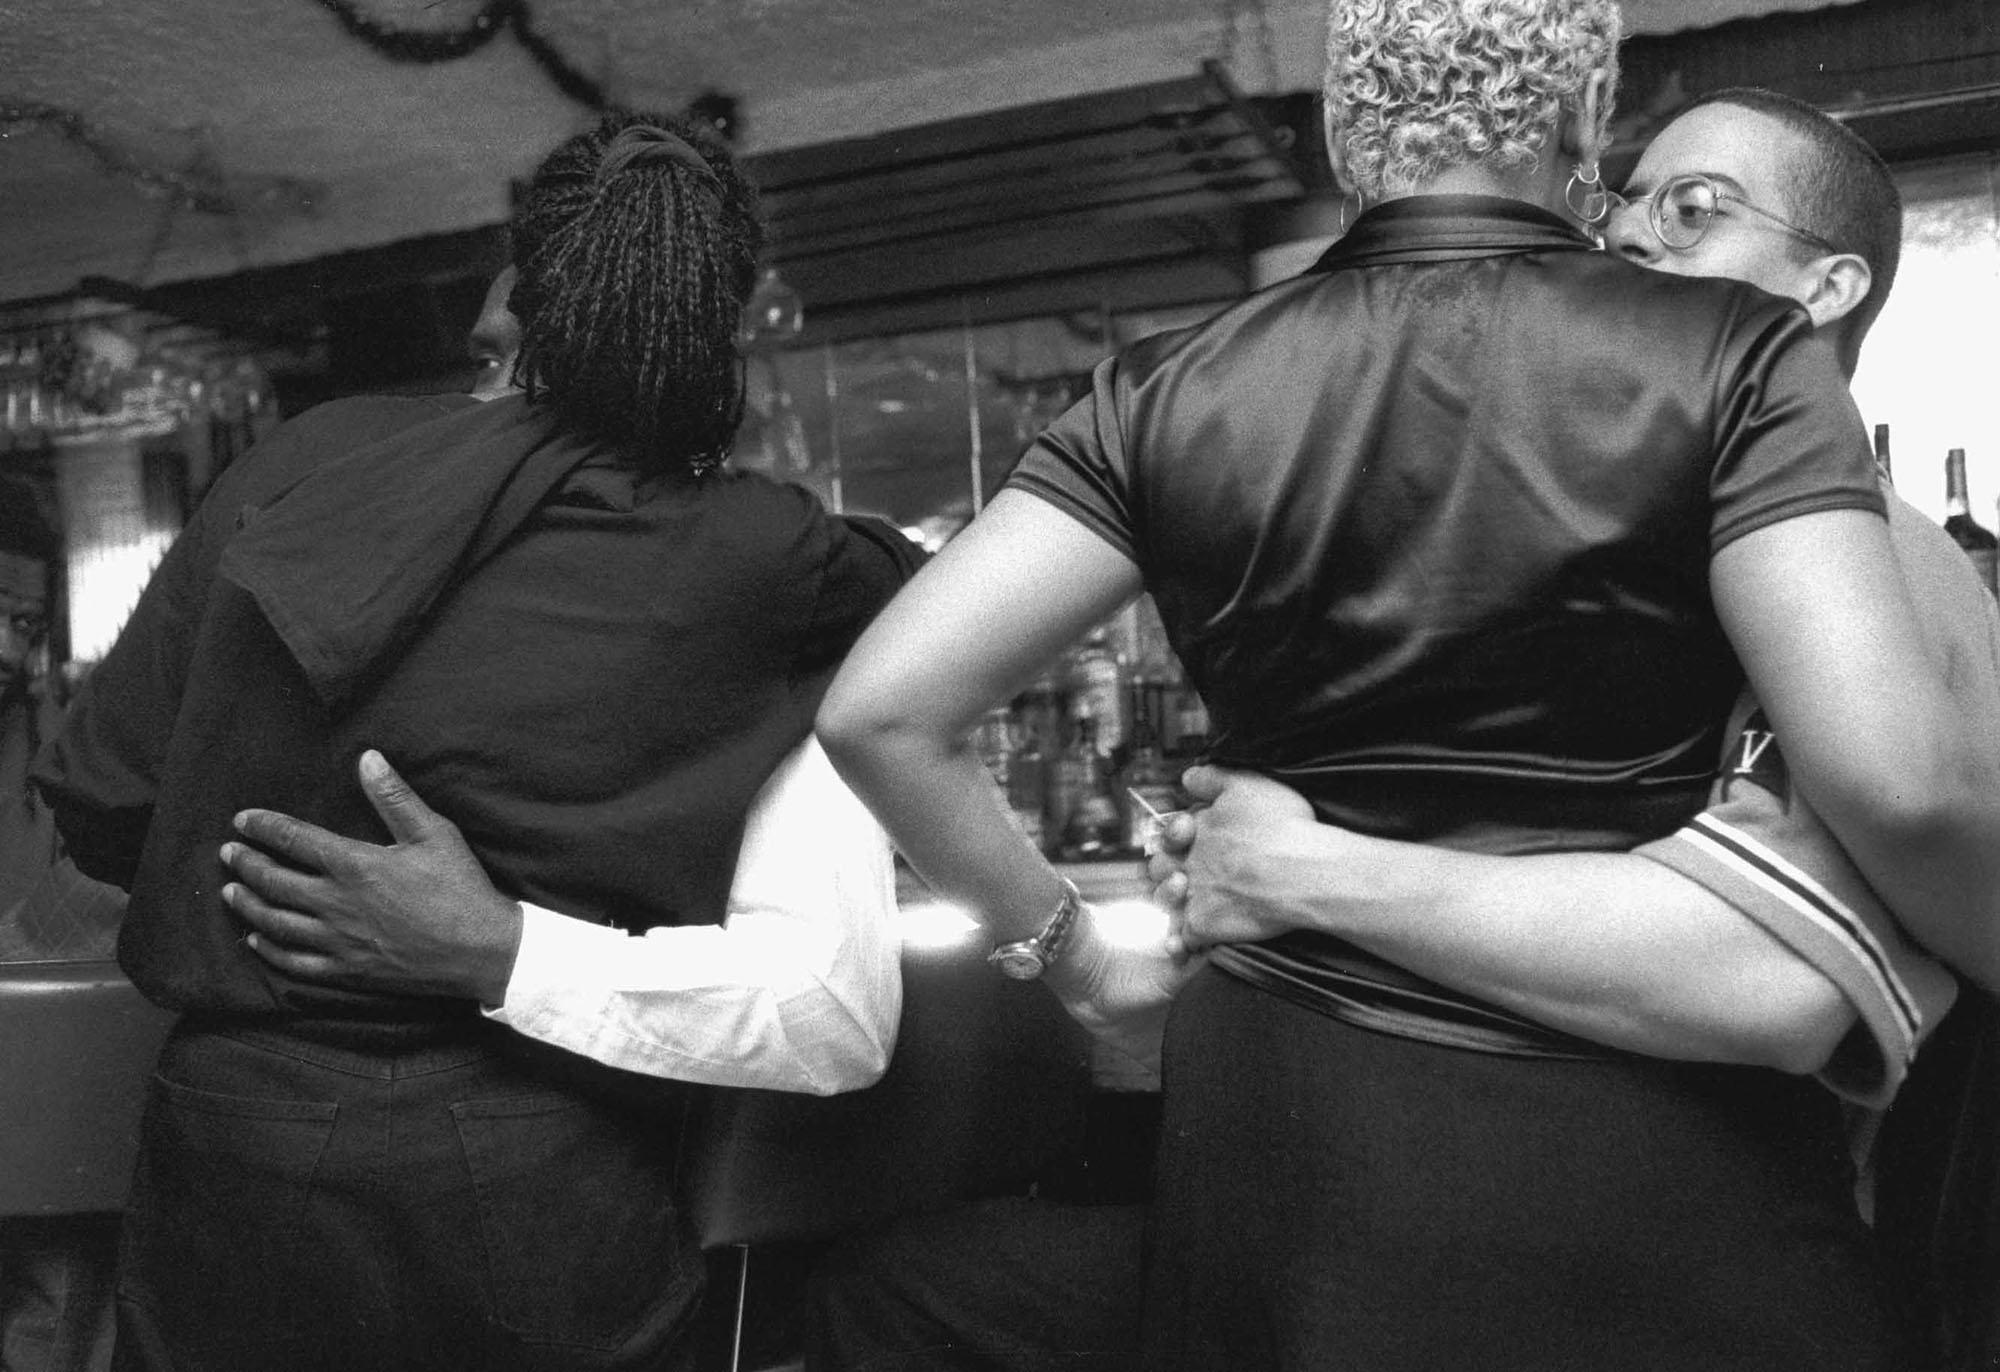 Gerald Cyrus, Two Couples, Arms Around, St. Nick's Pub, 1998. Gelatin silver print. Courtesy of the artist.